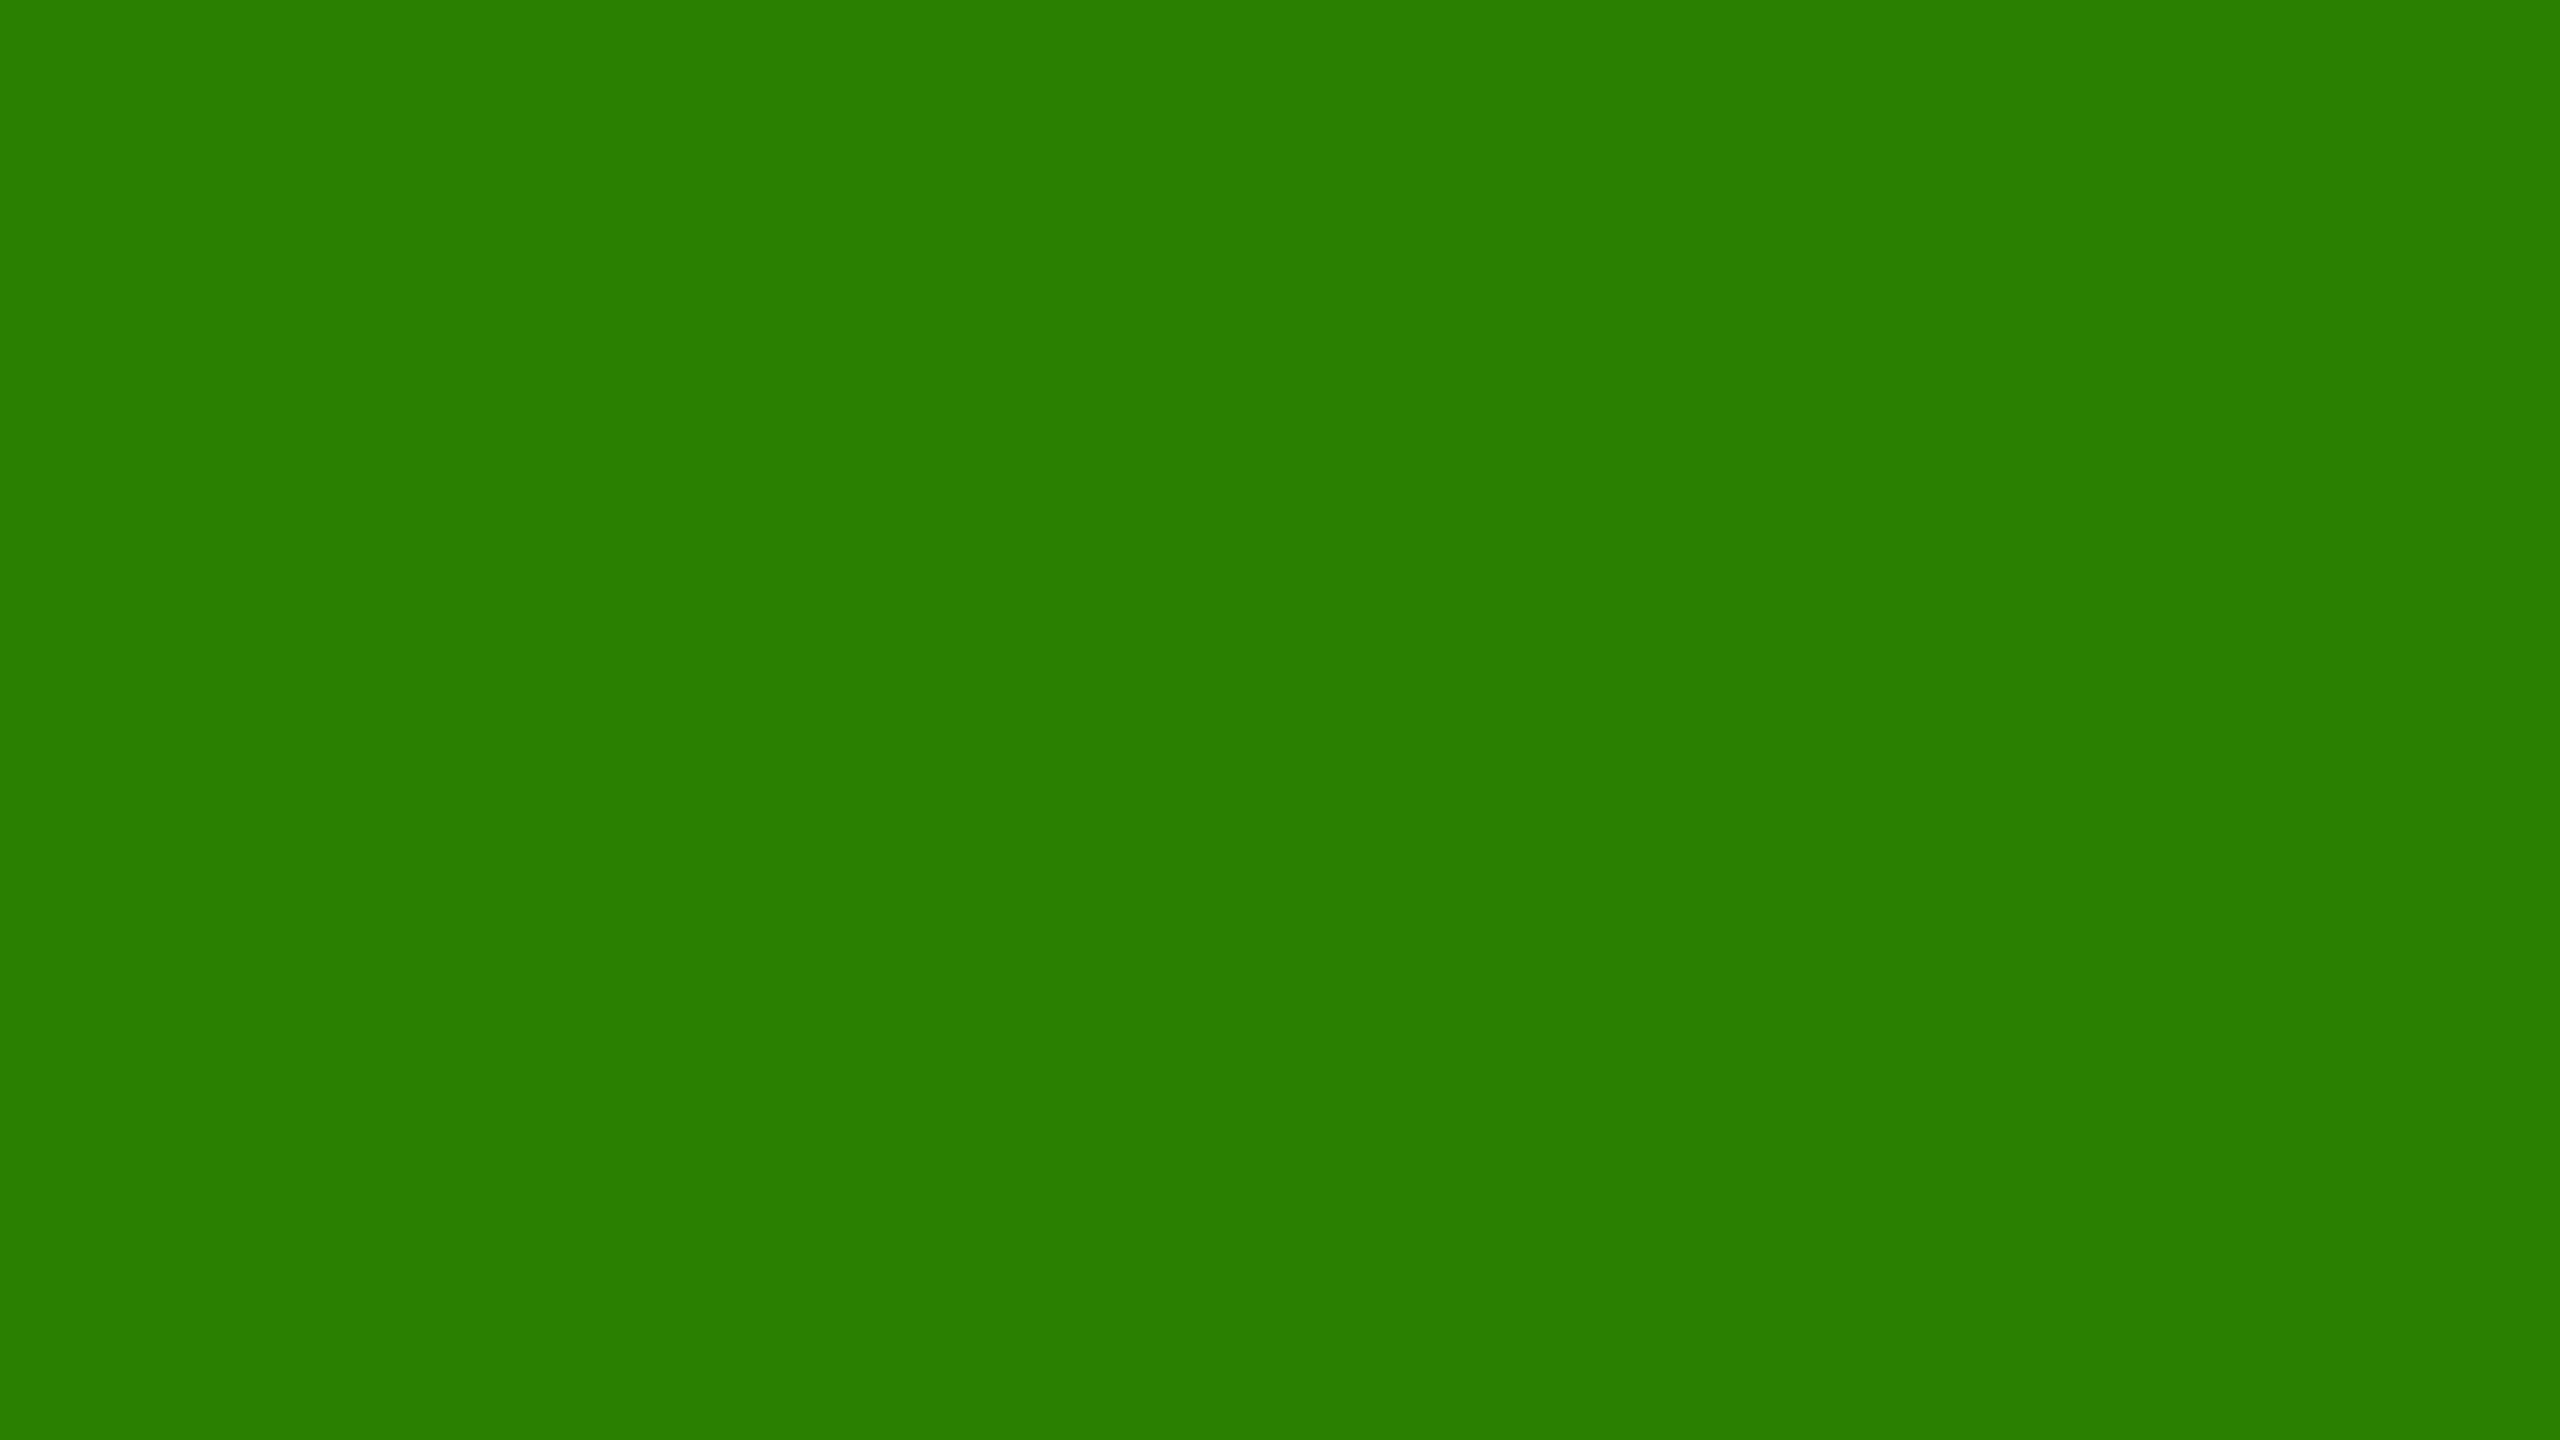 2560x1440 Napier Green Solid Color Background